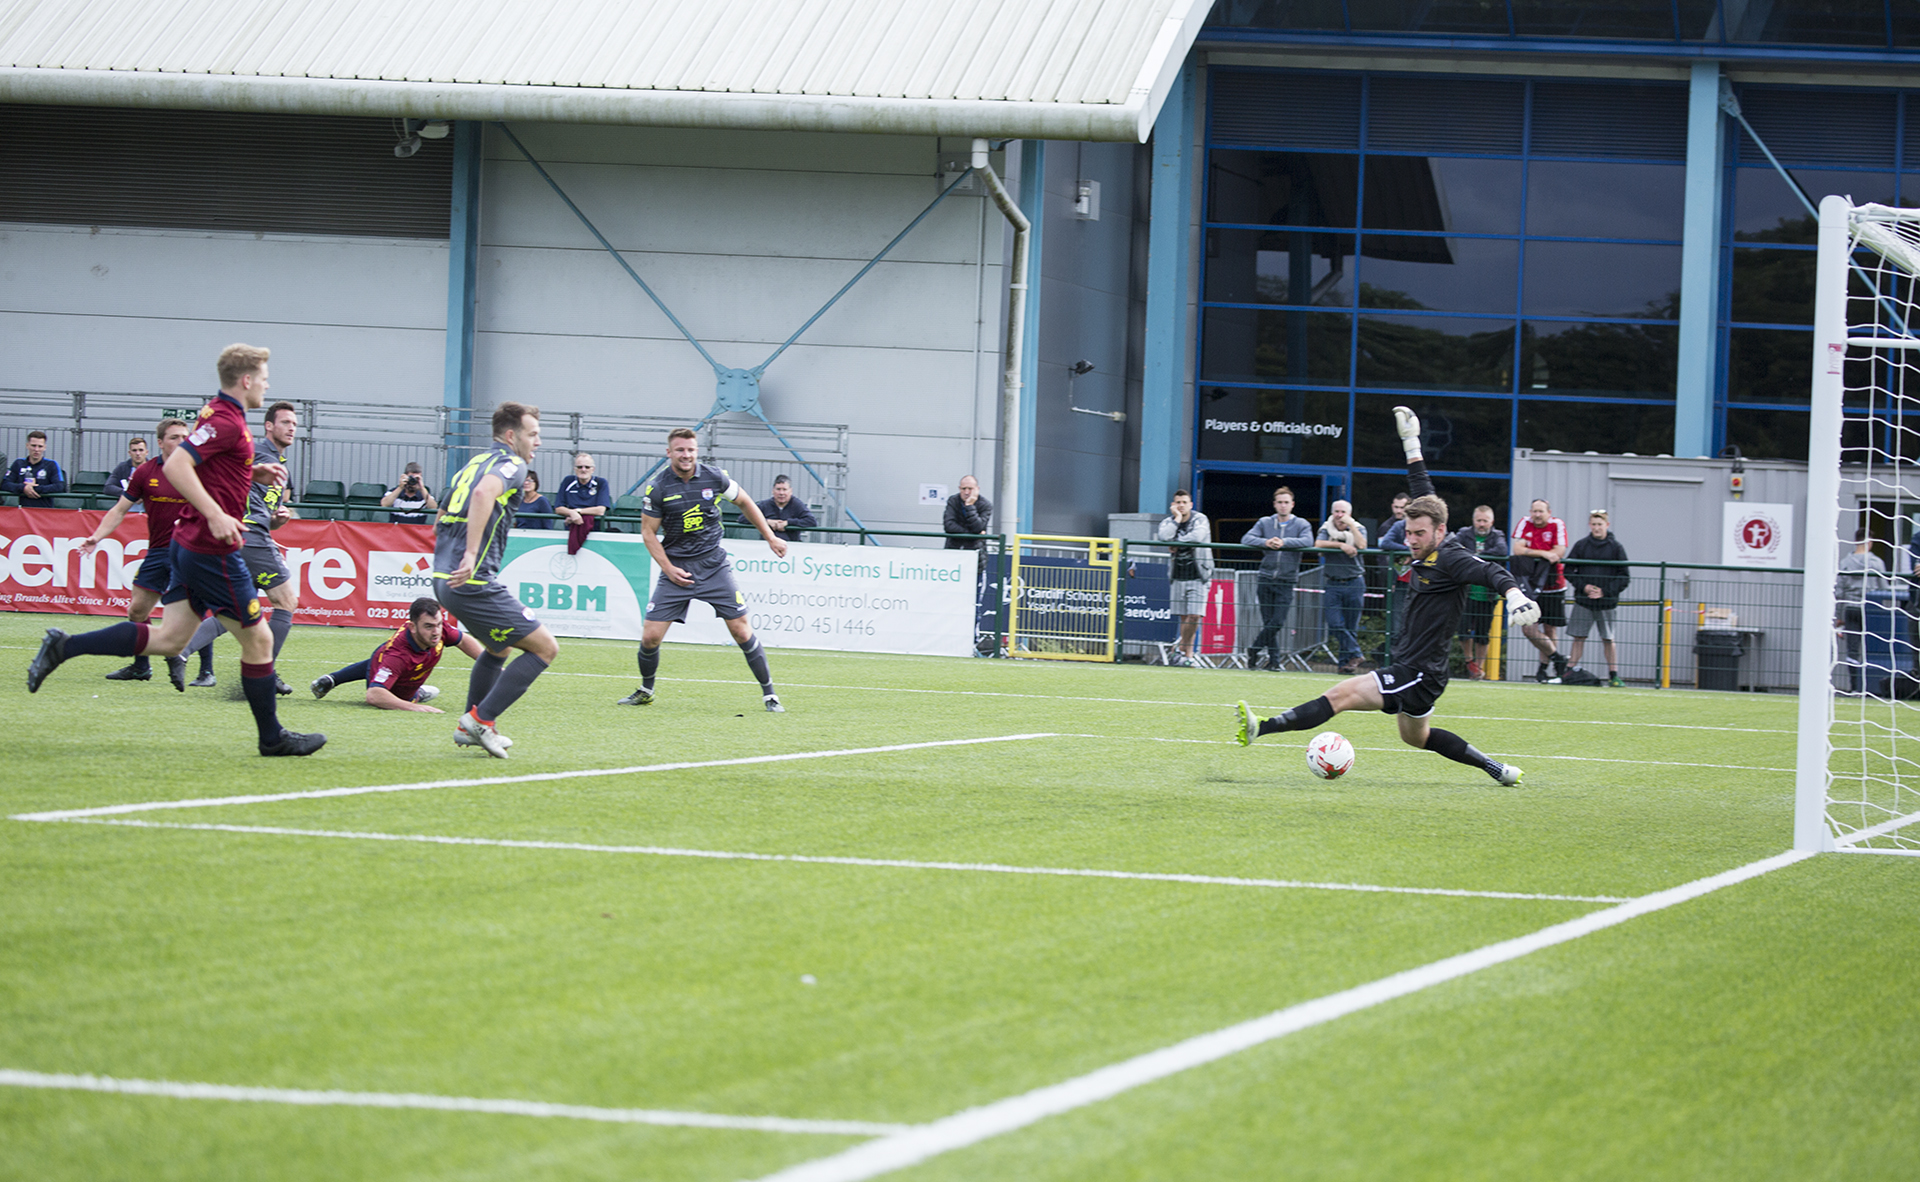 Matty Williams scores for The Nomads